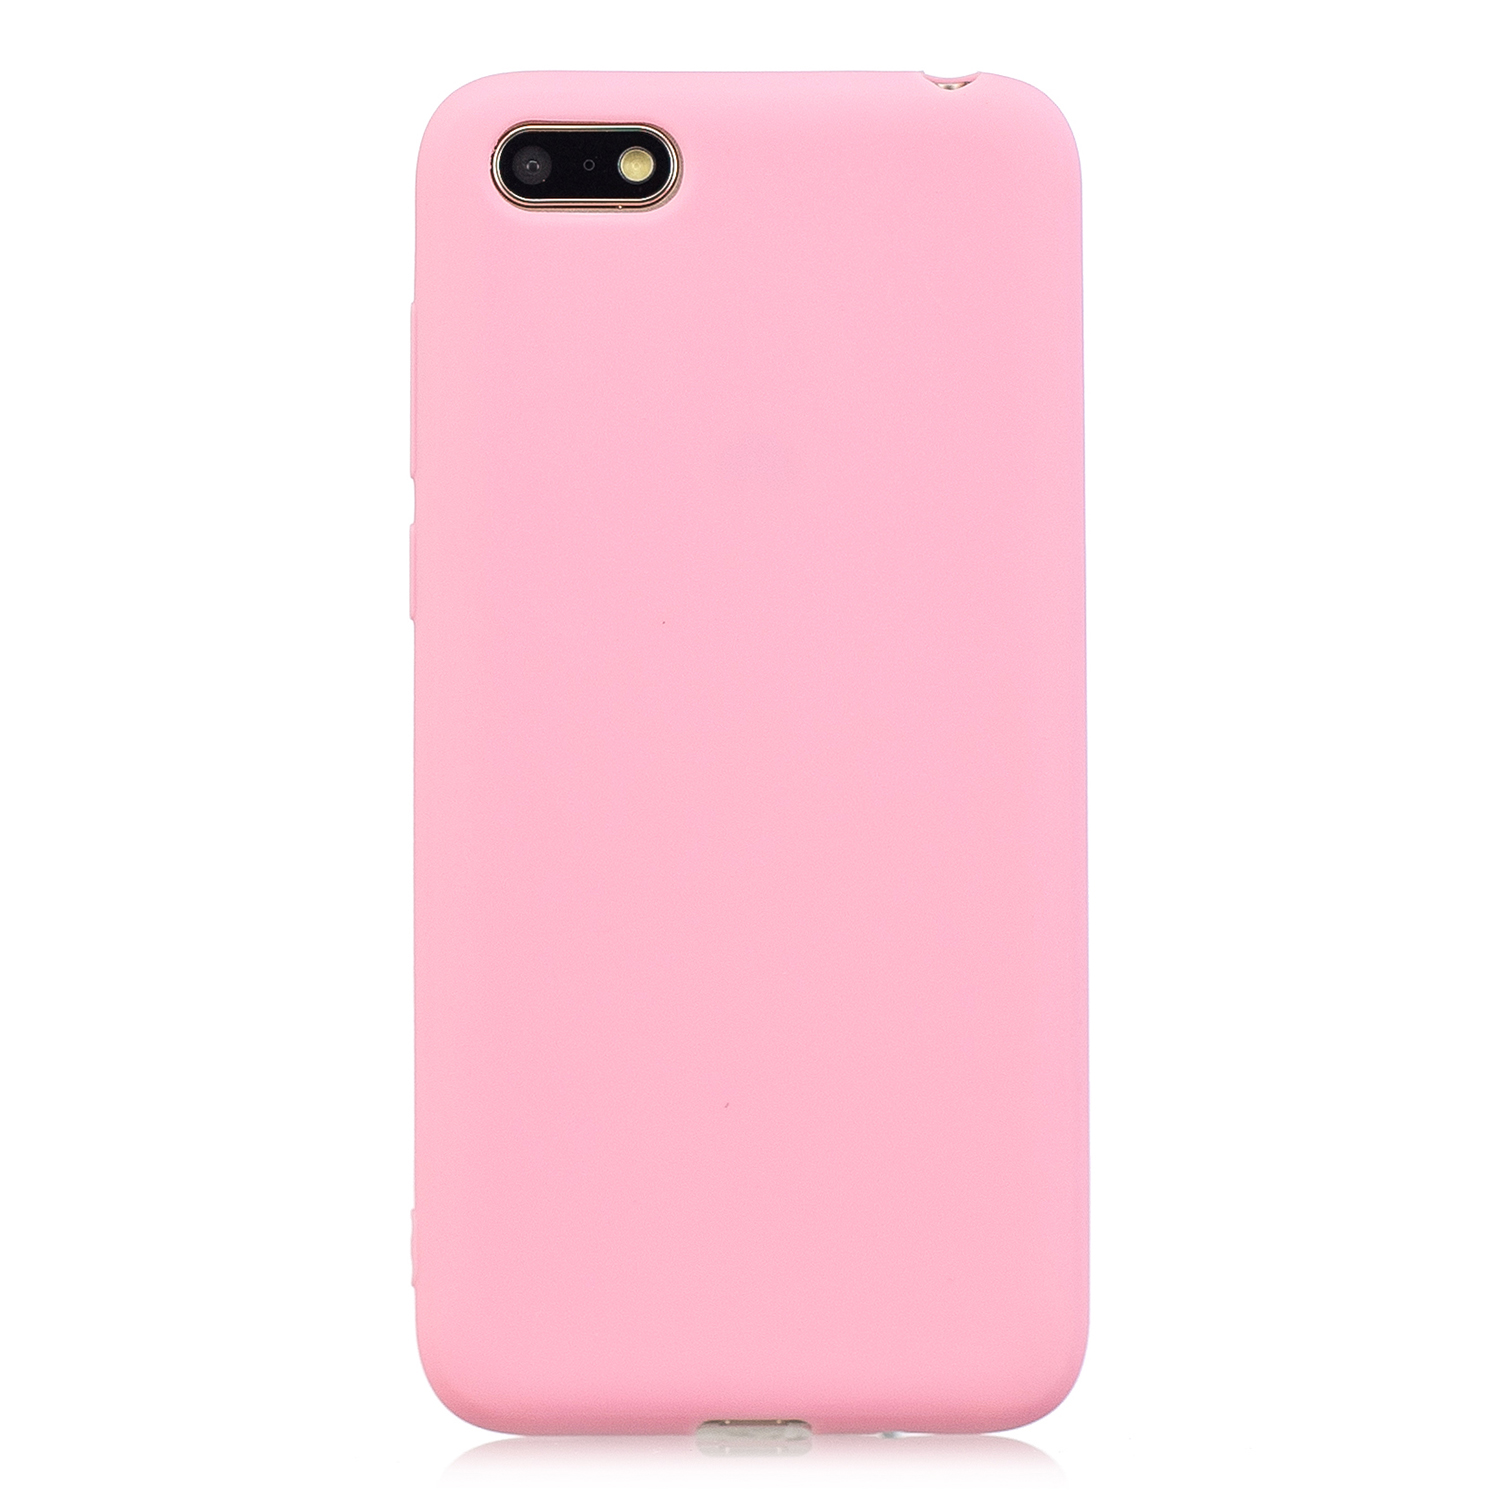 for HUAWEI Y5 2018 Cute Candy Color Matte TPU Anti-scratch Non-slip Protective Cover Back Case dark pink